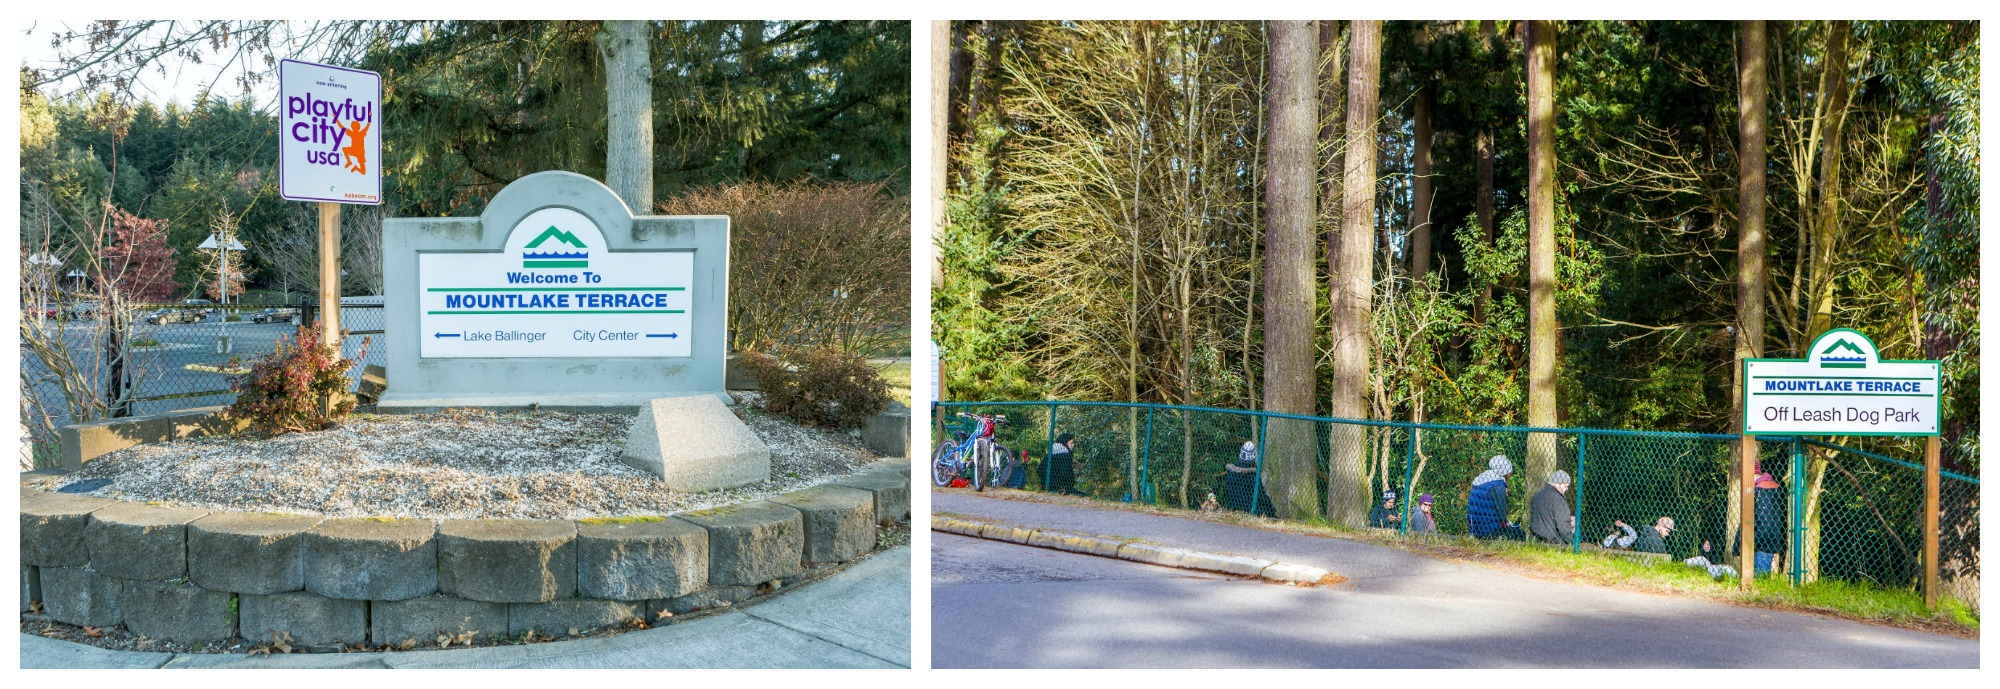 "The Mountlake Terrace Off-Leash Dog Park, Mountlake Terrace Recreation Pavillion, Terrace Creek Park ""Candy Cane Park,"" and Veterans Memorial Park are just a few of the many scenic outdoor retreats in Mountlake Terrace."